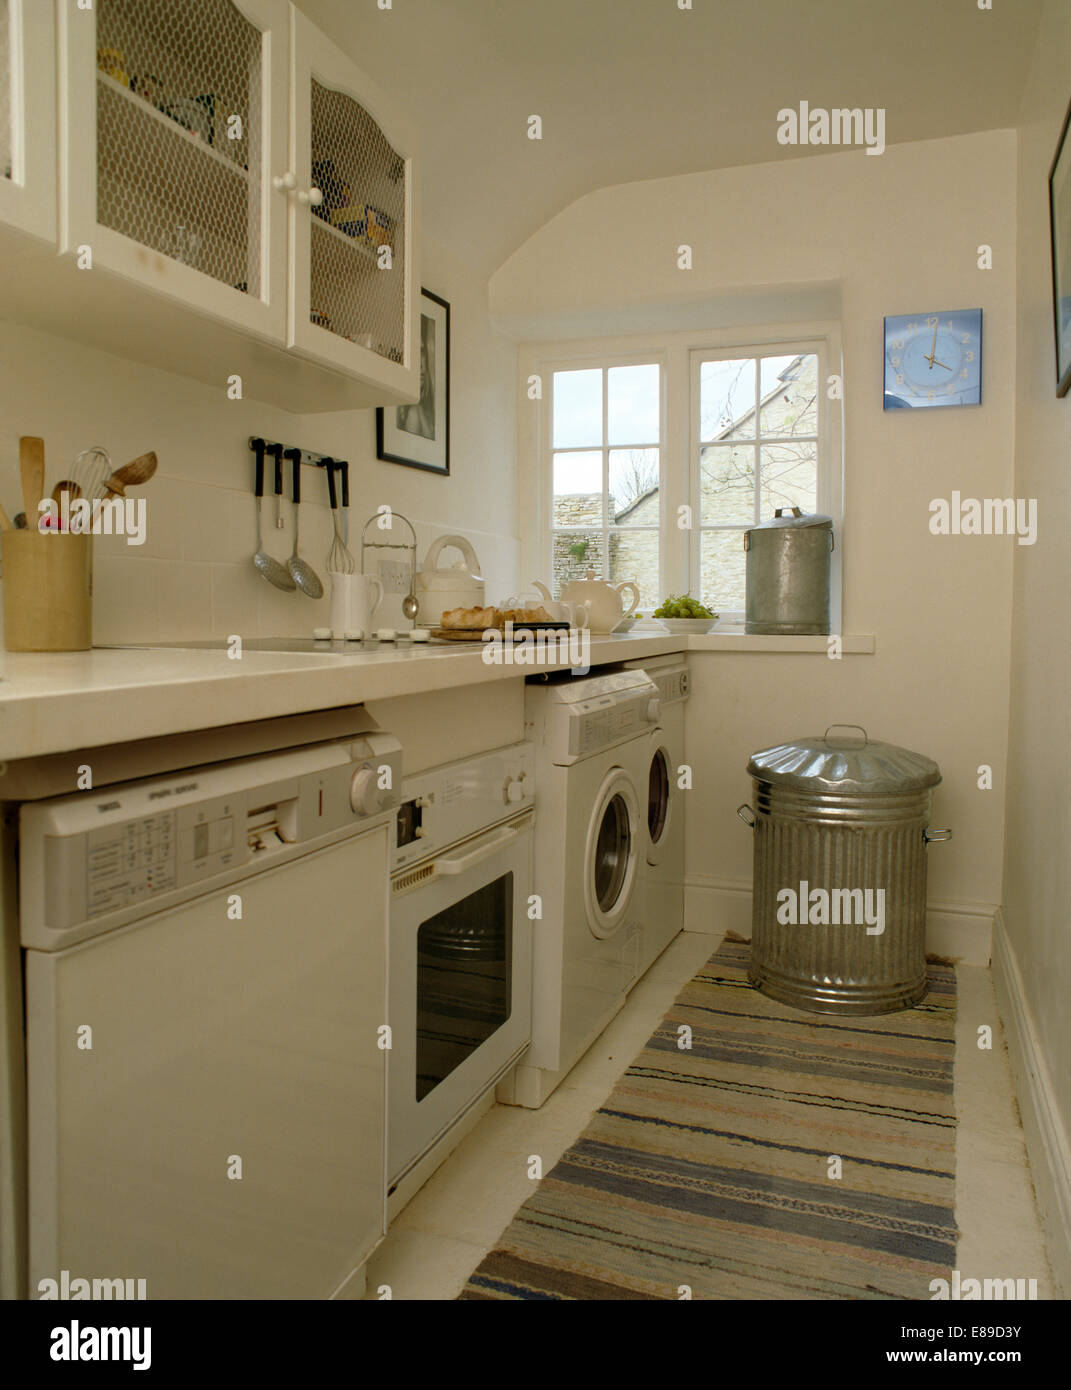 Dishwasher and oven with washing machine in row of appliances in white kitchen with galvanised bin - Stock Image